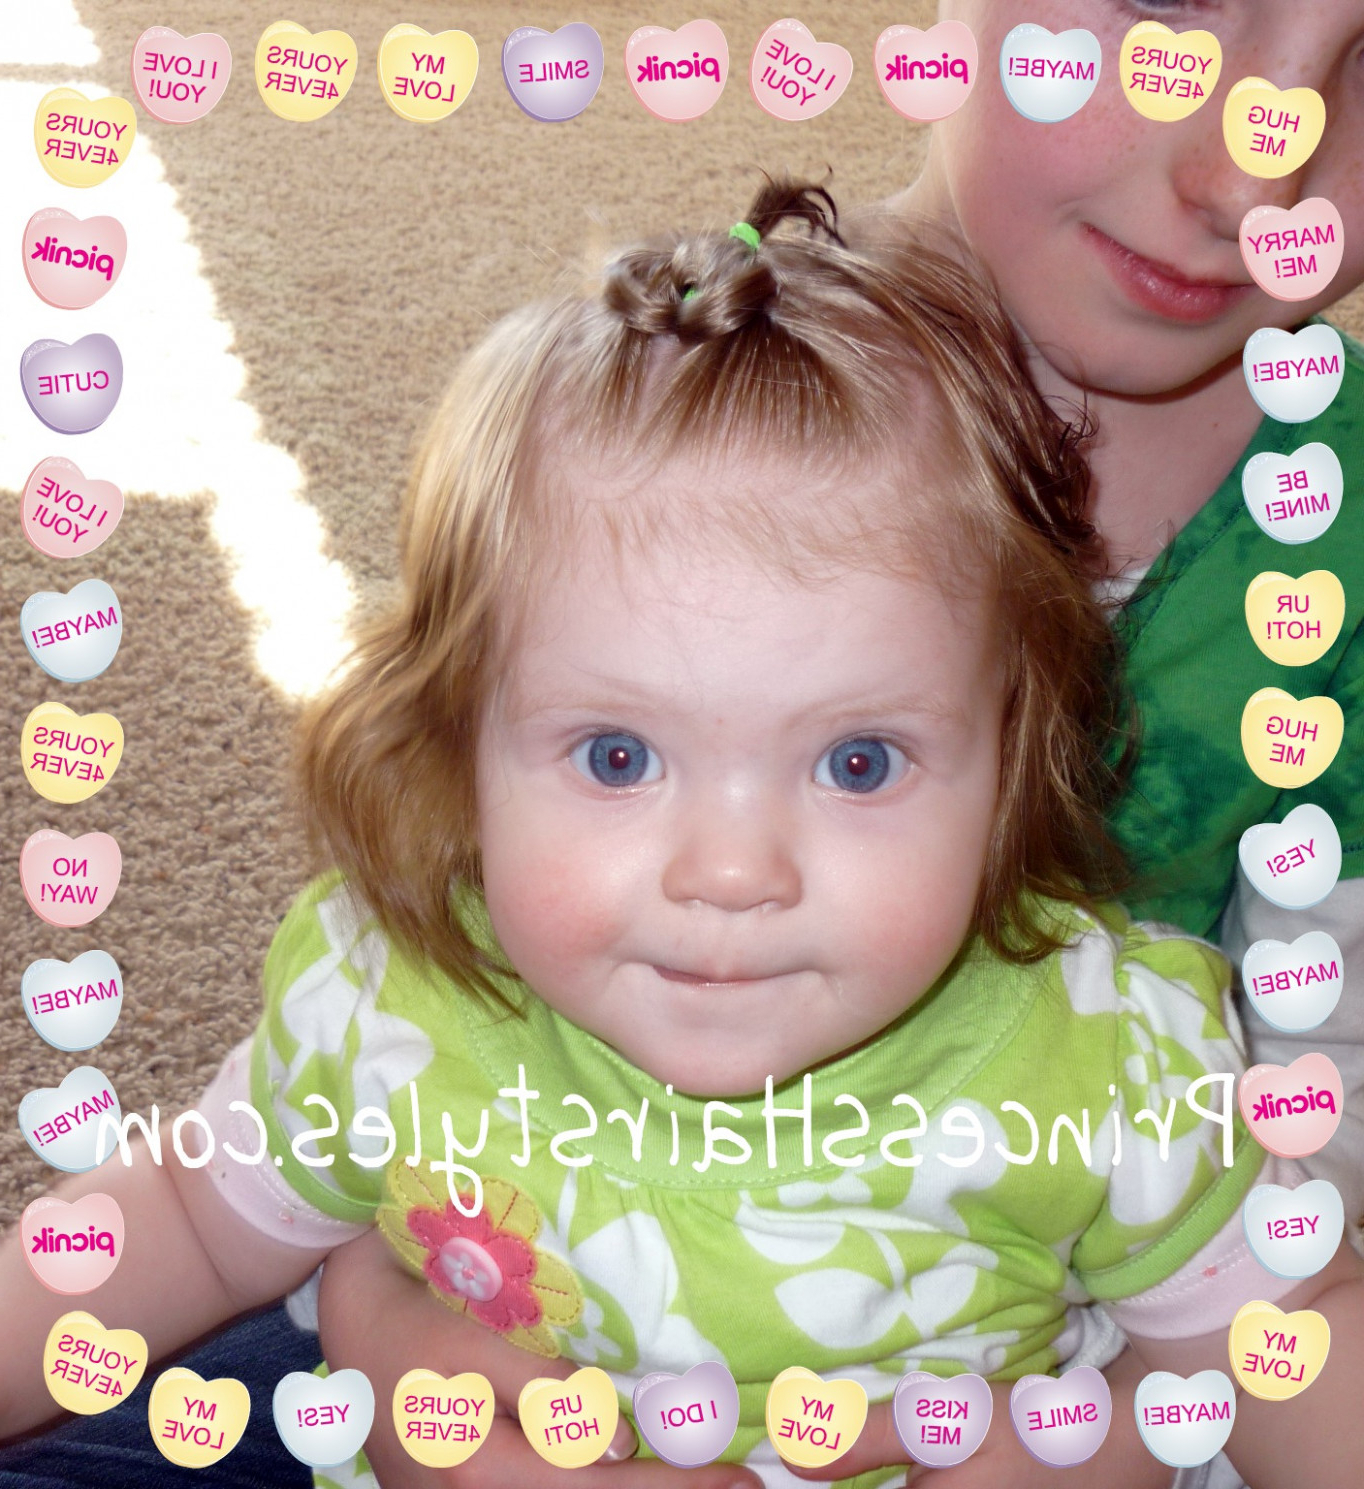 Baby Girl Hairstyles For Short Curly Hair Archives – Cut Hairstyle 2018 Regarding Baby Girl Short Hairstyles (View 25 of 25)